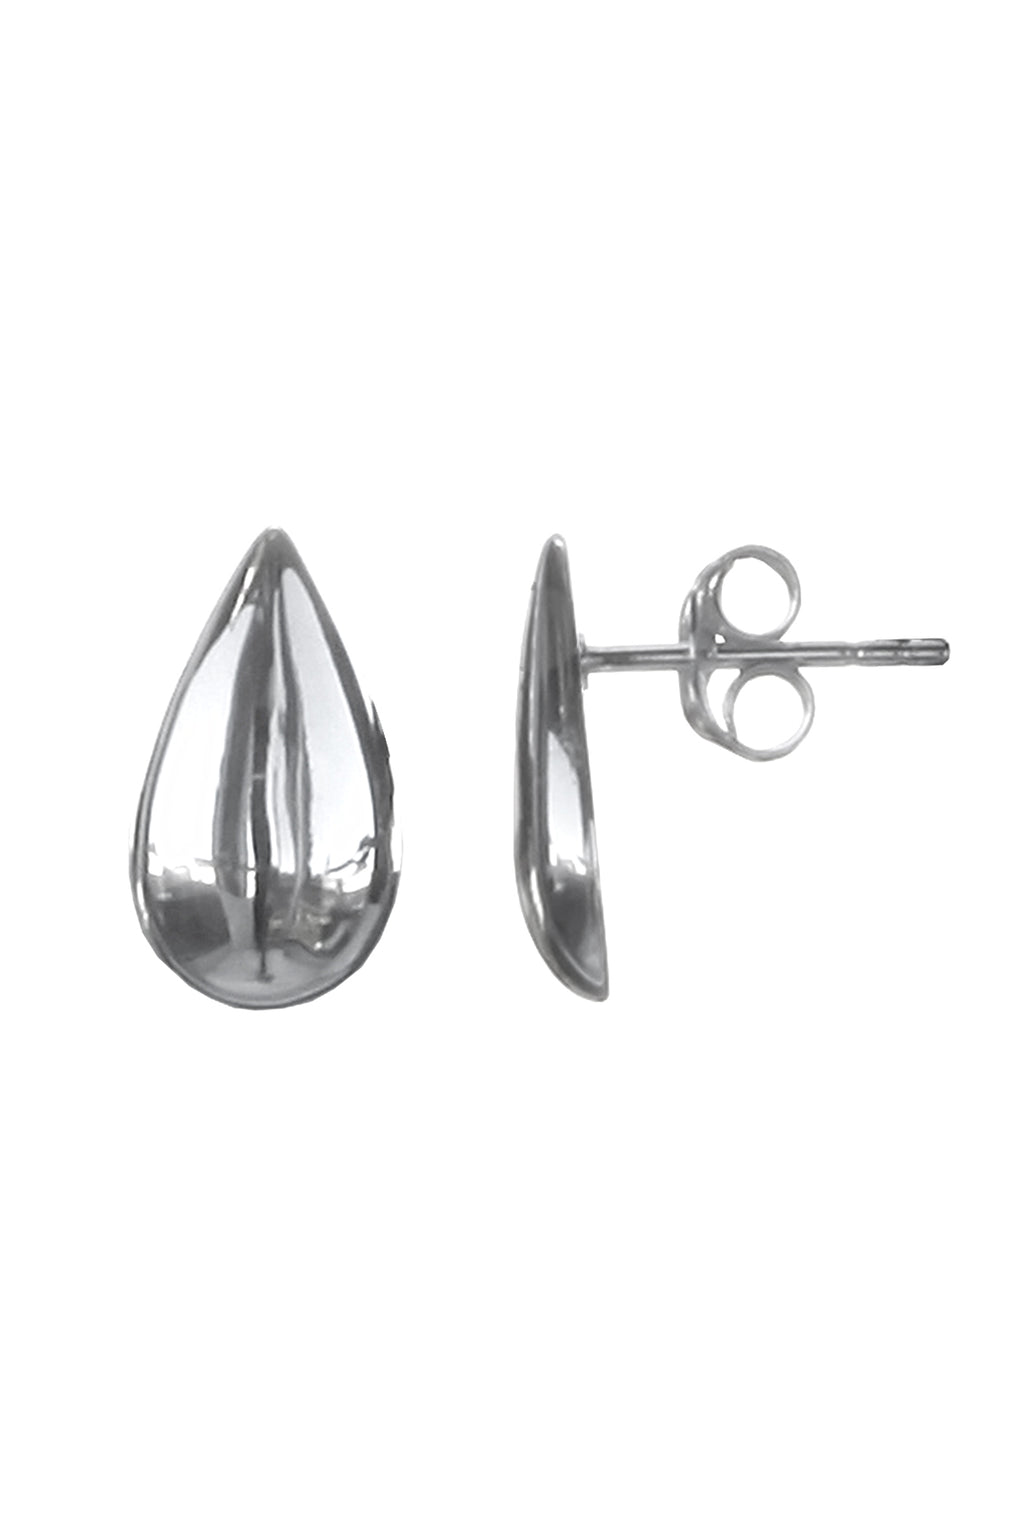 Silver Teardrop Stud Earrings / Nina B Jewellery